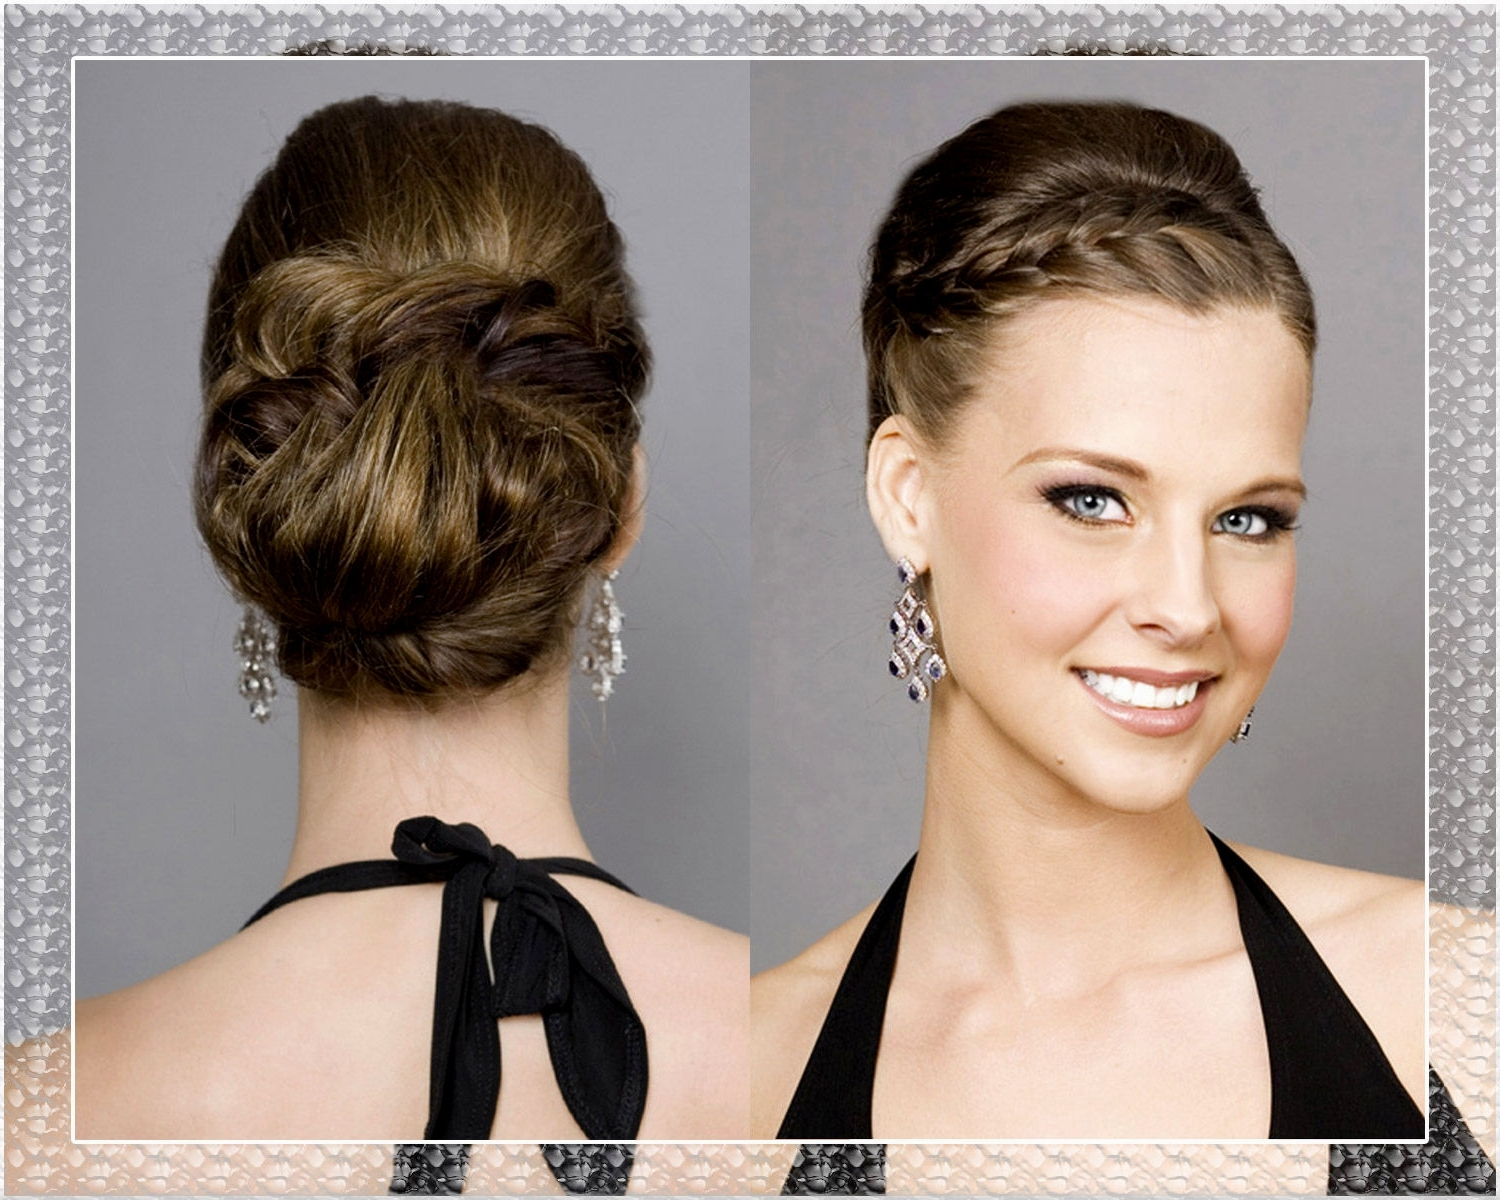 50s Hairstyles: 11 Vintage Hairstyles To Look Special | Hairstylo Pertaining To Updo Hairstyles For Older Women (View 14 of 15)